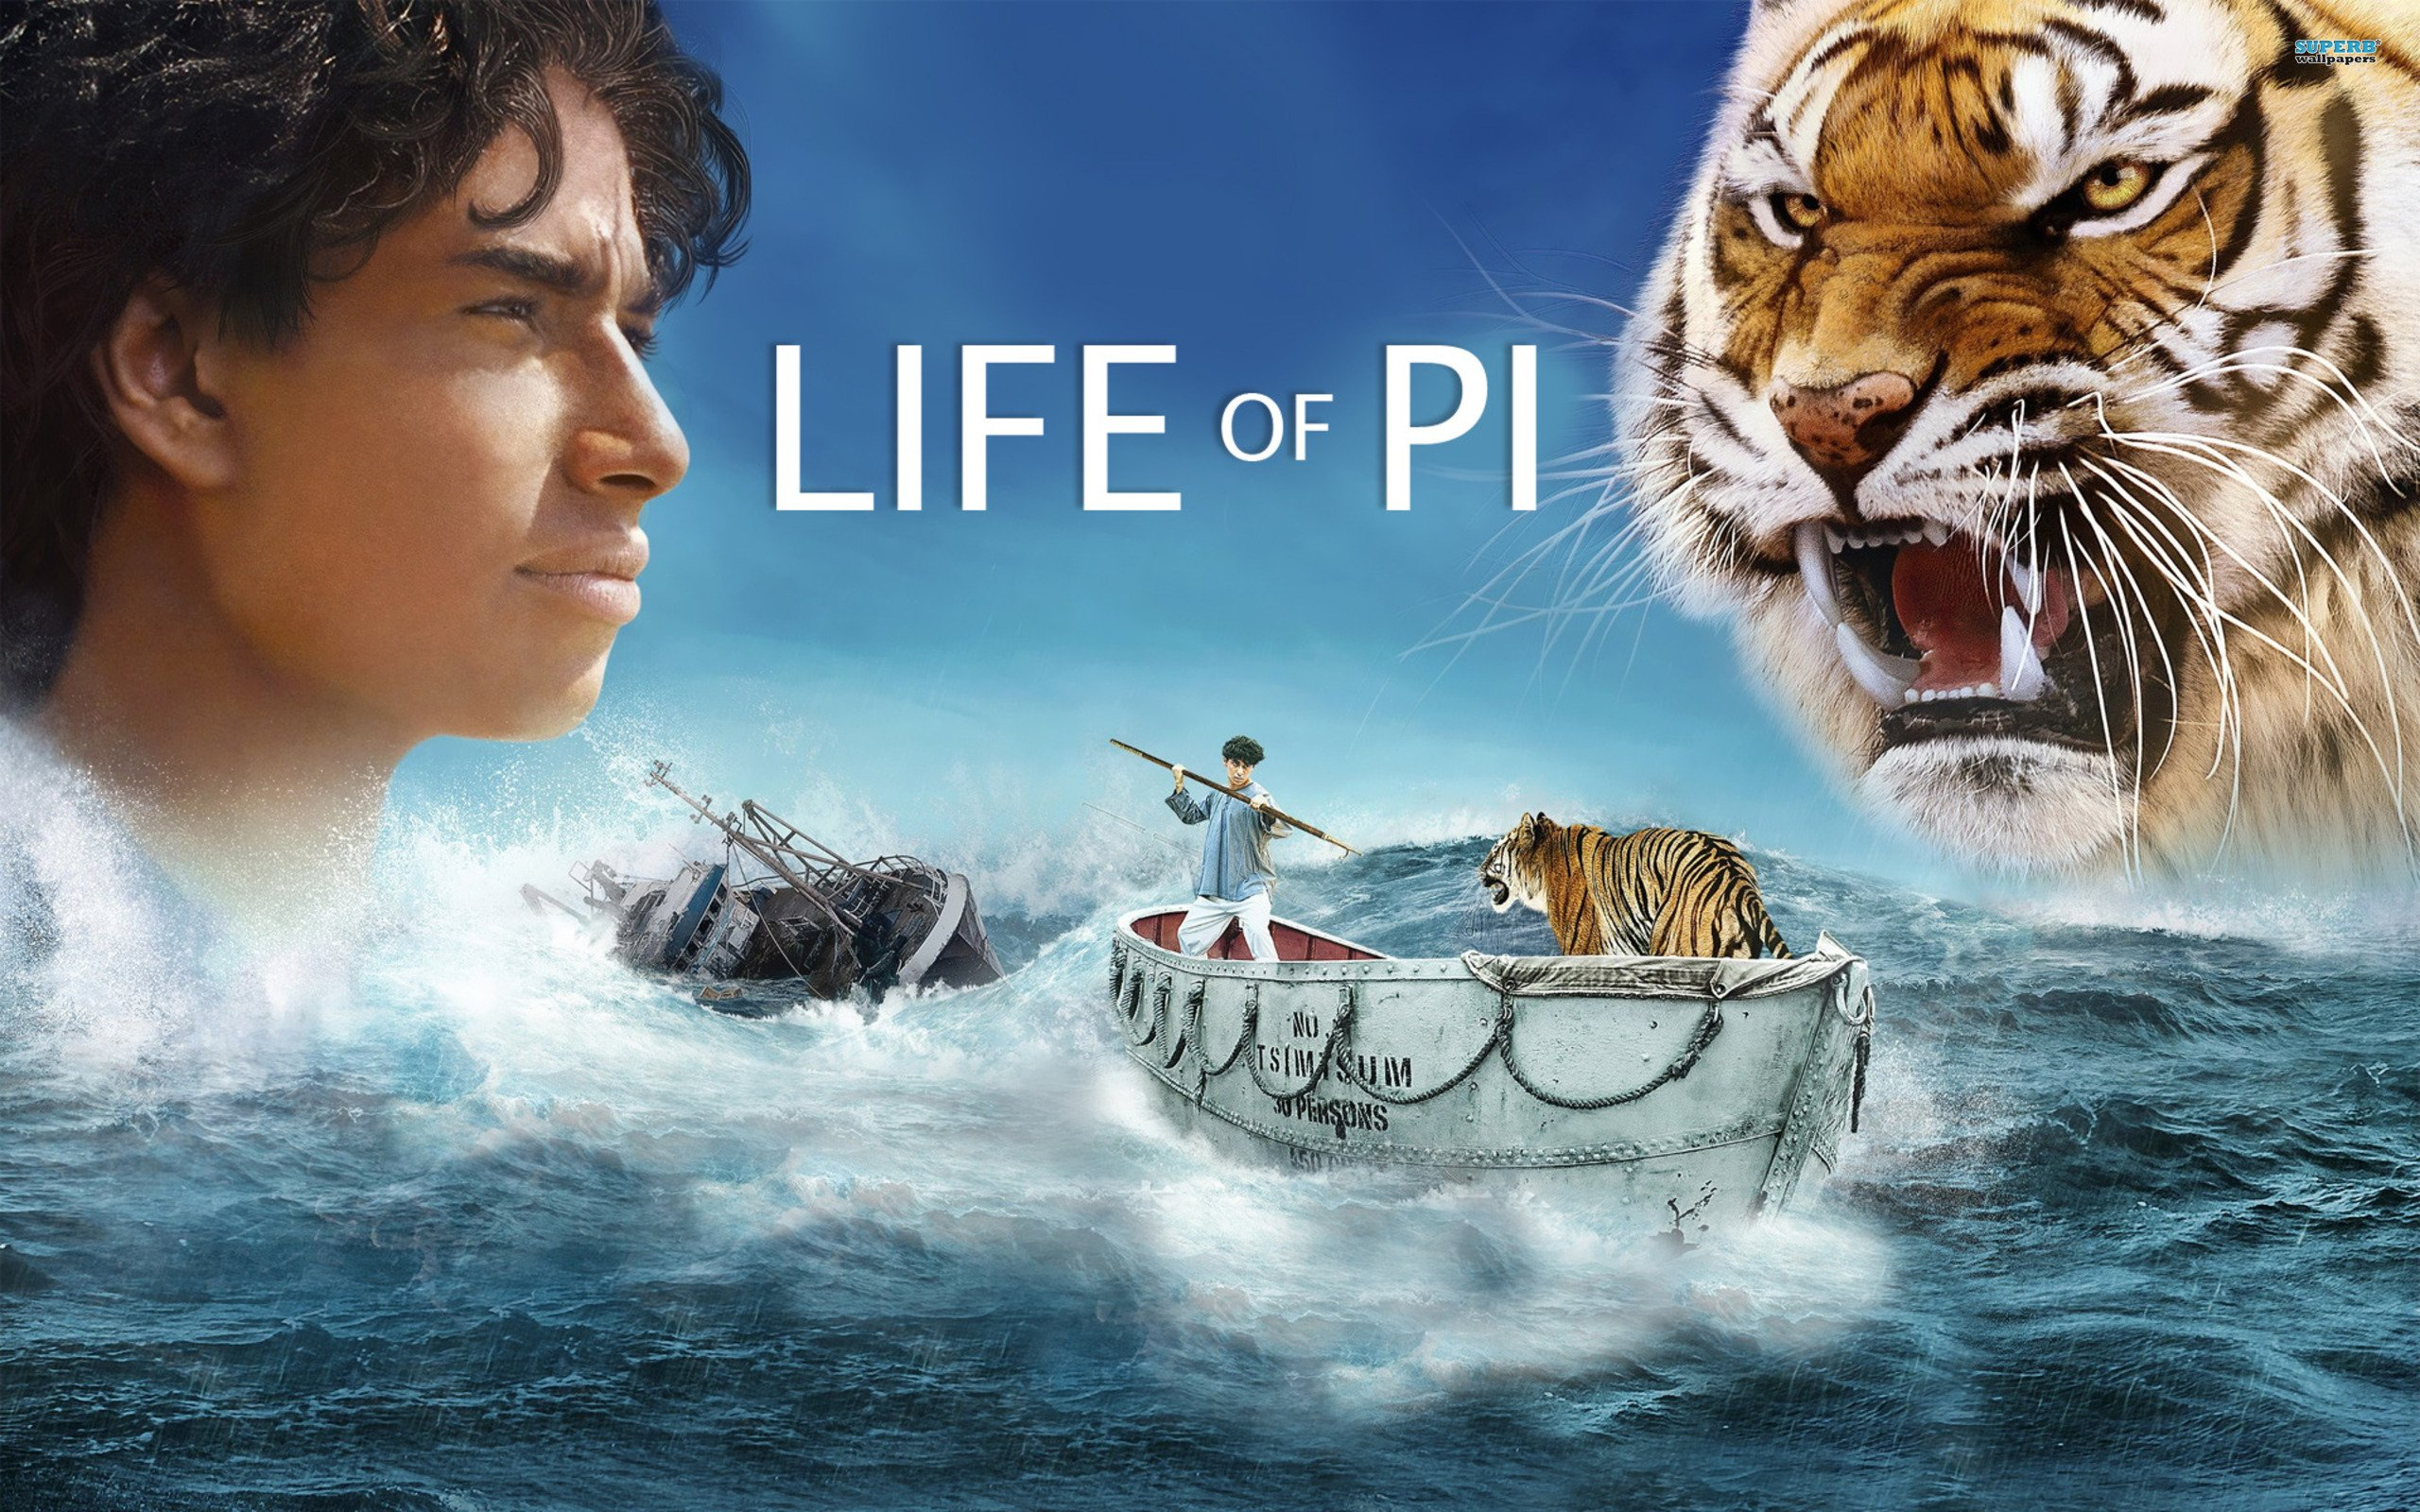 Life of pi movie wallpapers in jpg format for free download.